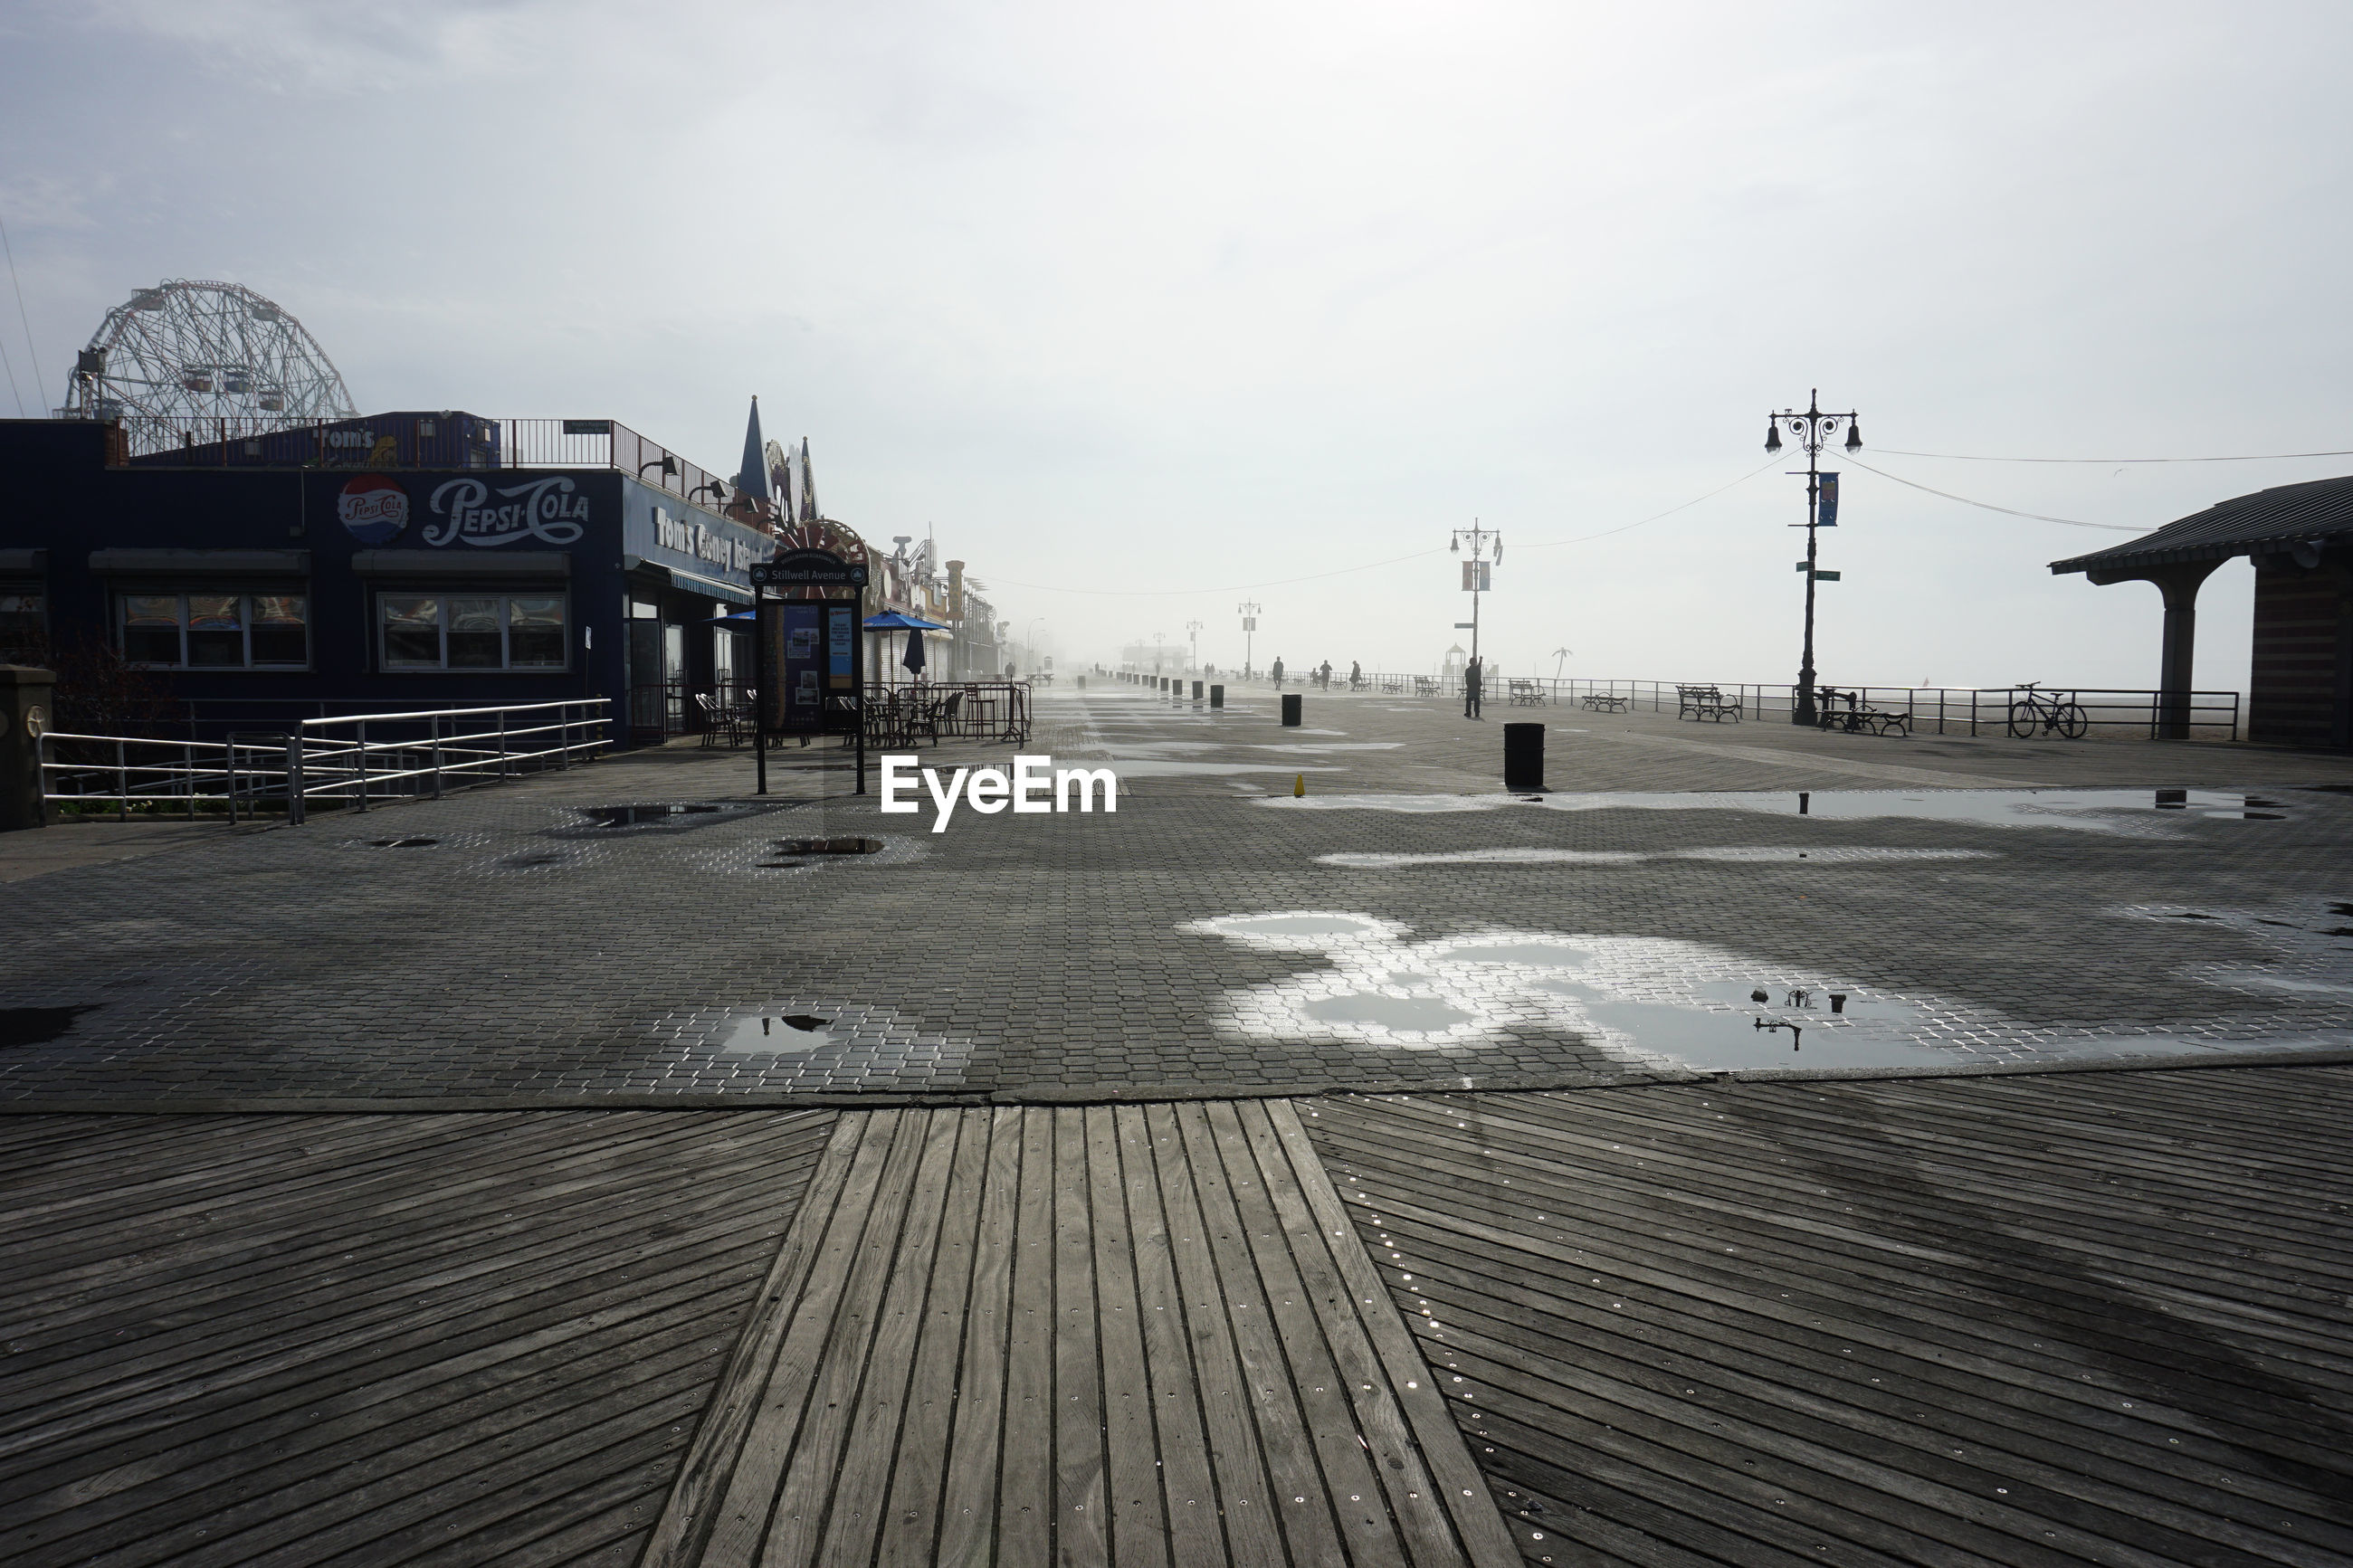 VIEW OF PIER ON CITY BUILDINGS